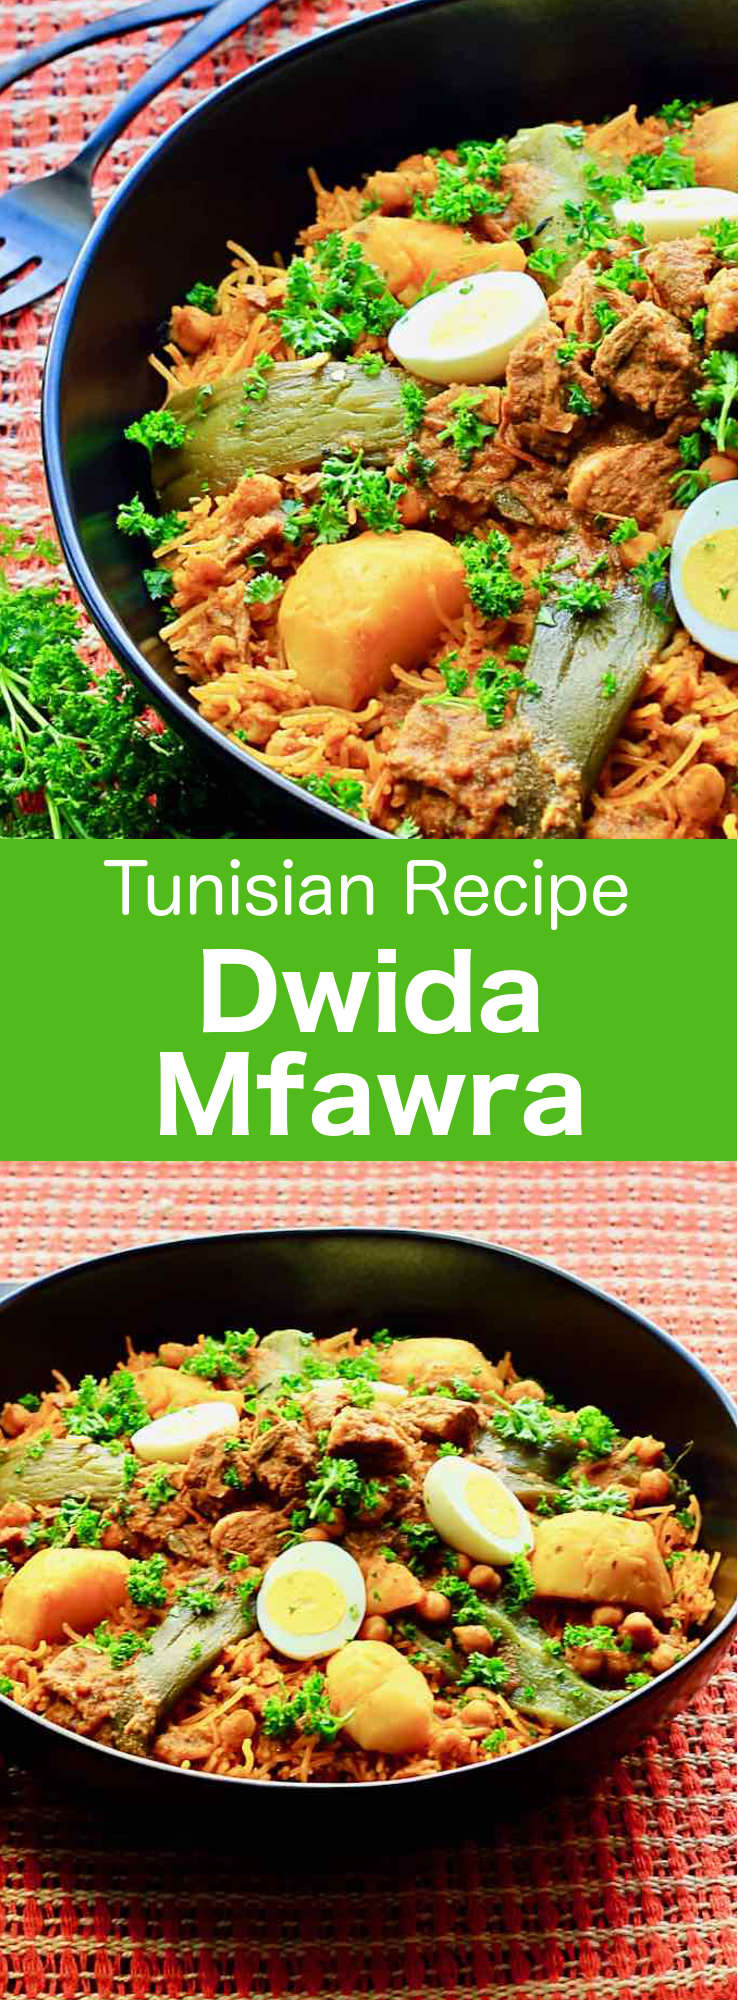 Dwida mfawra is a traditional Tunisian and Algerian recipe that consists in steamed thin broken vermicelli that are baked and served with a meat stew, typically lamb or chicken. #Tunisia #Tunisian #TunisianCuisine #TunisianRecipe #NorthAfricanCuisine #NorthAfricanRecipe #NorthAfrica #Maghreb #MaghrebCuisine #WorldCuisine #196flavors